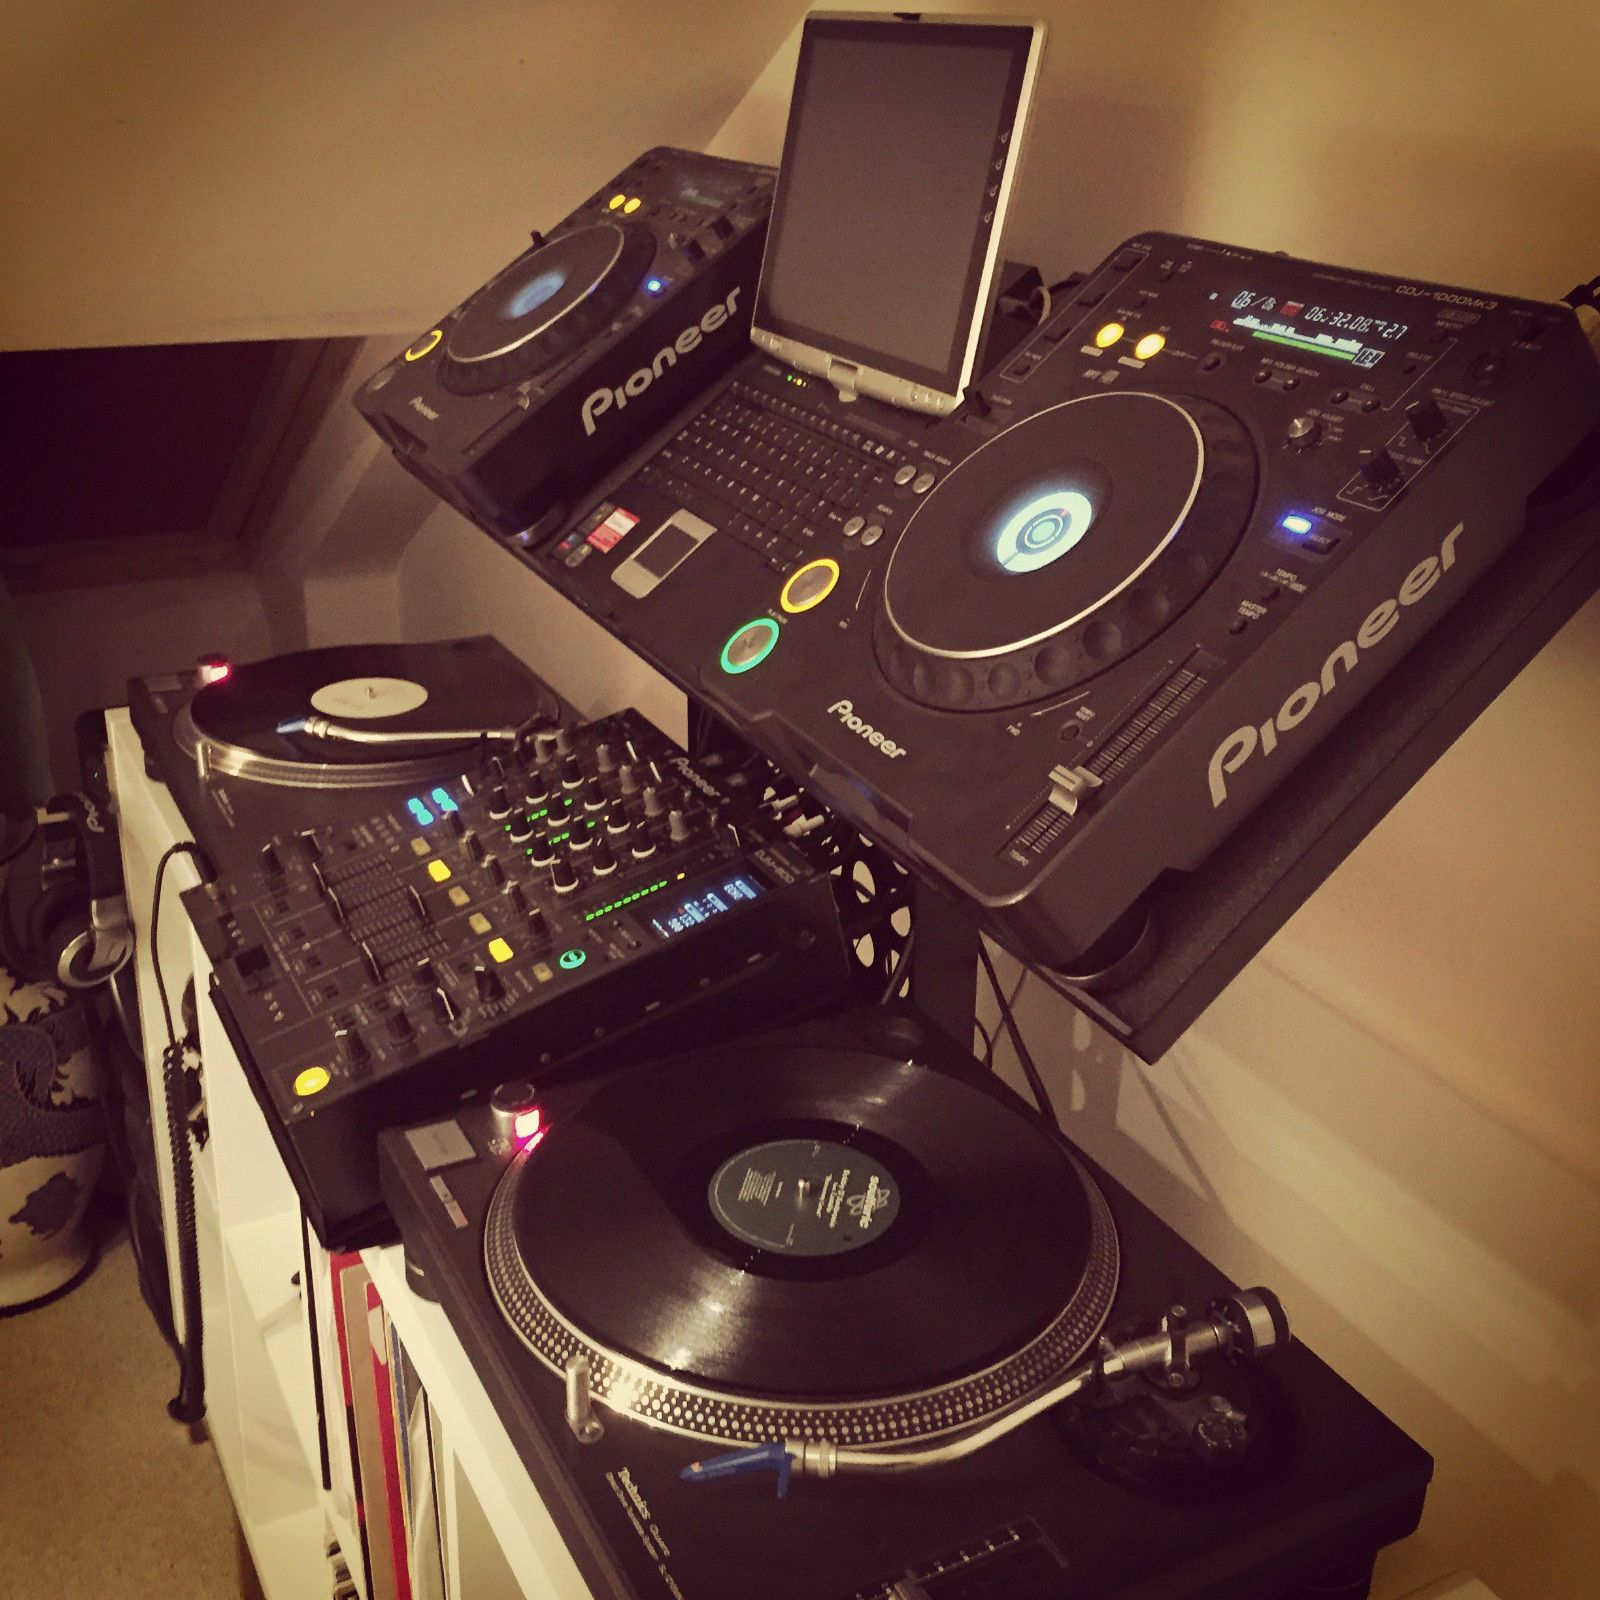 dj matrix stand cdj2000 djm pioneer etc this dj pioneer dj dj setup dj stand. Black Bedroom Furniture Sets. Home Design Ideas